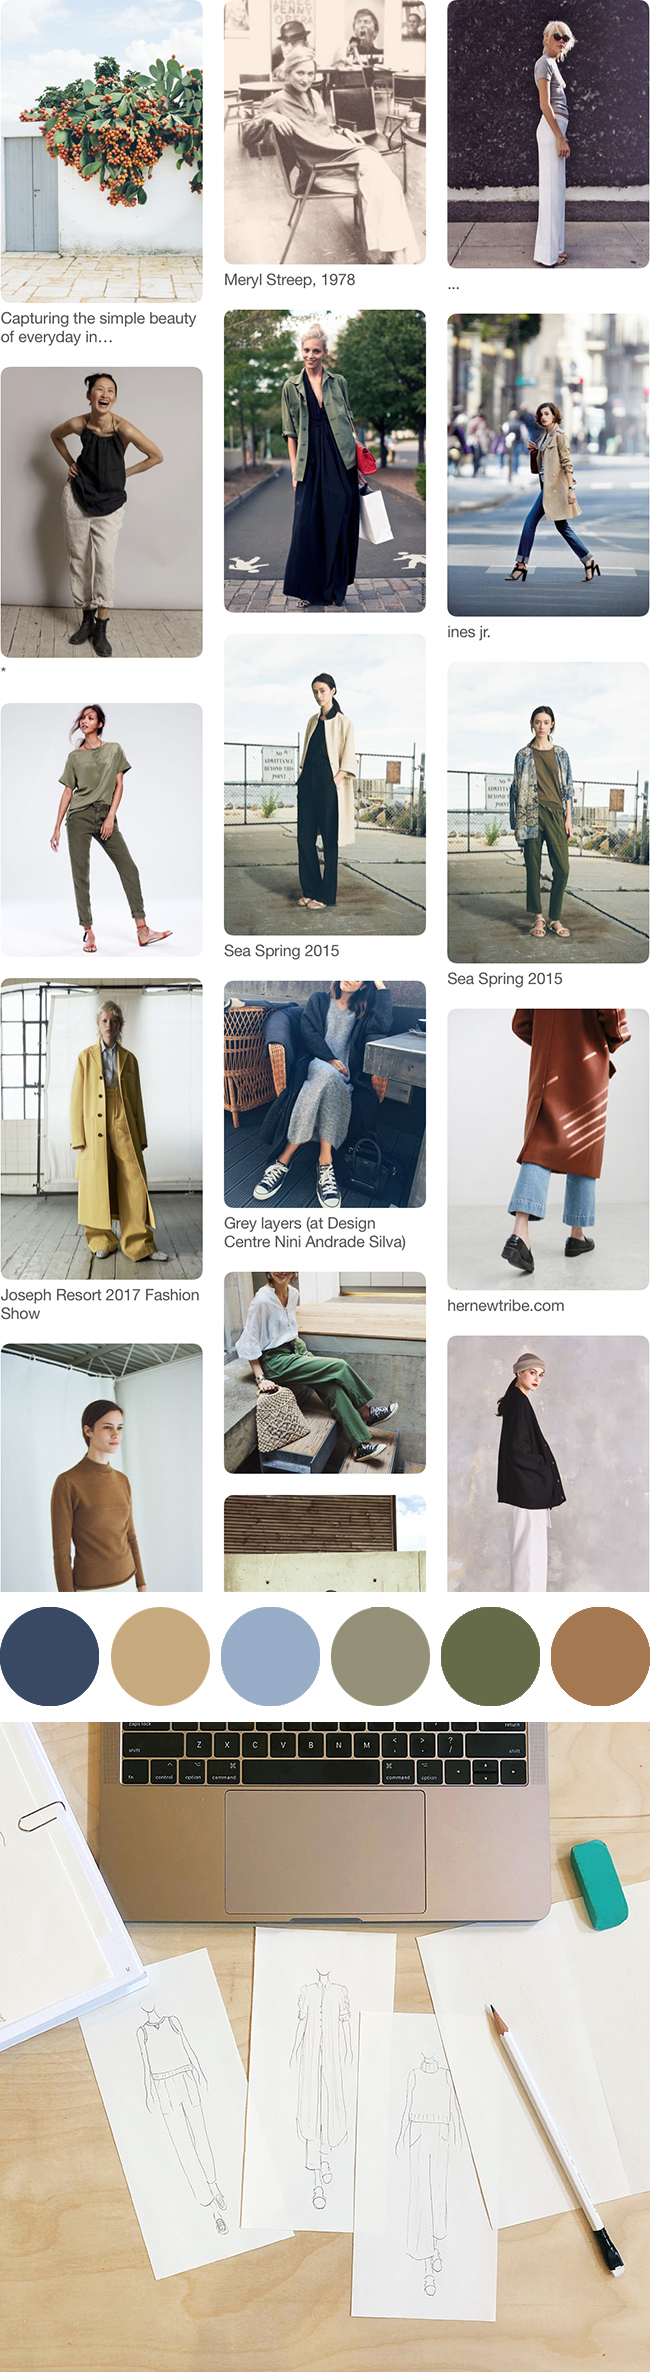 Spring '18 wardrobe planning: Mood and strategy